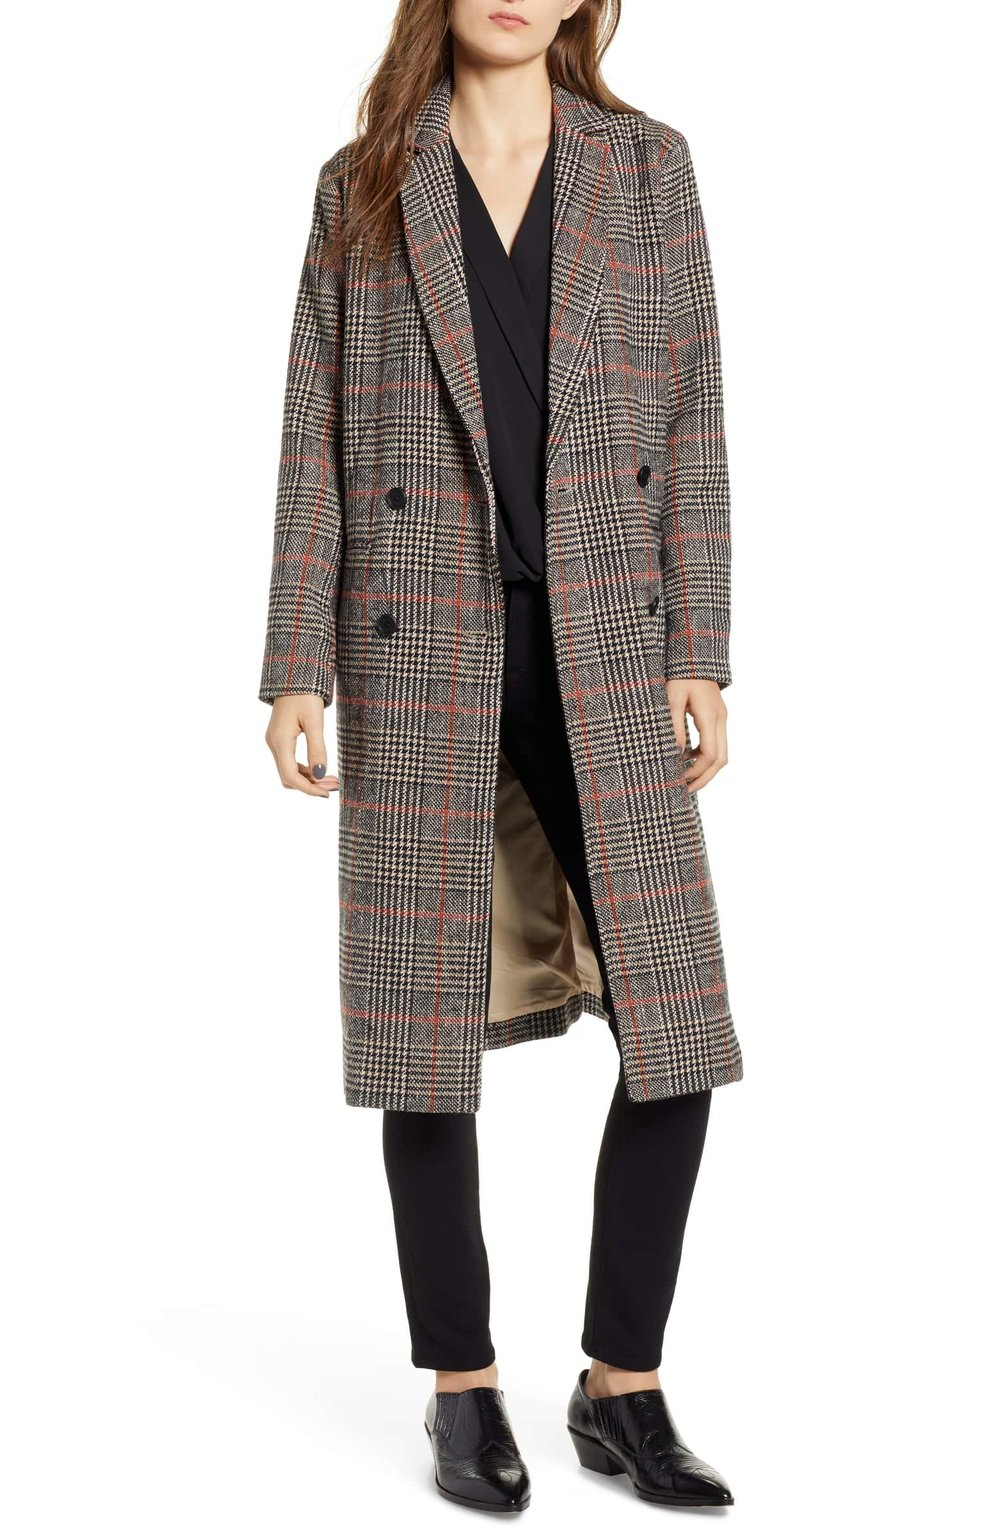 Cupcakes and Cashmere Plaid Duster Jacket $178